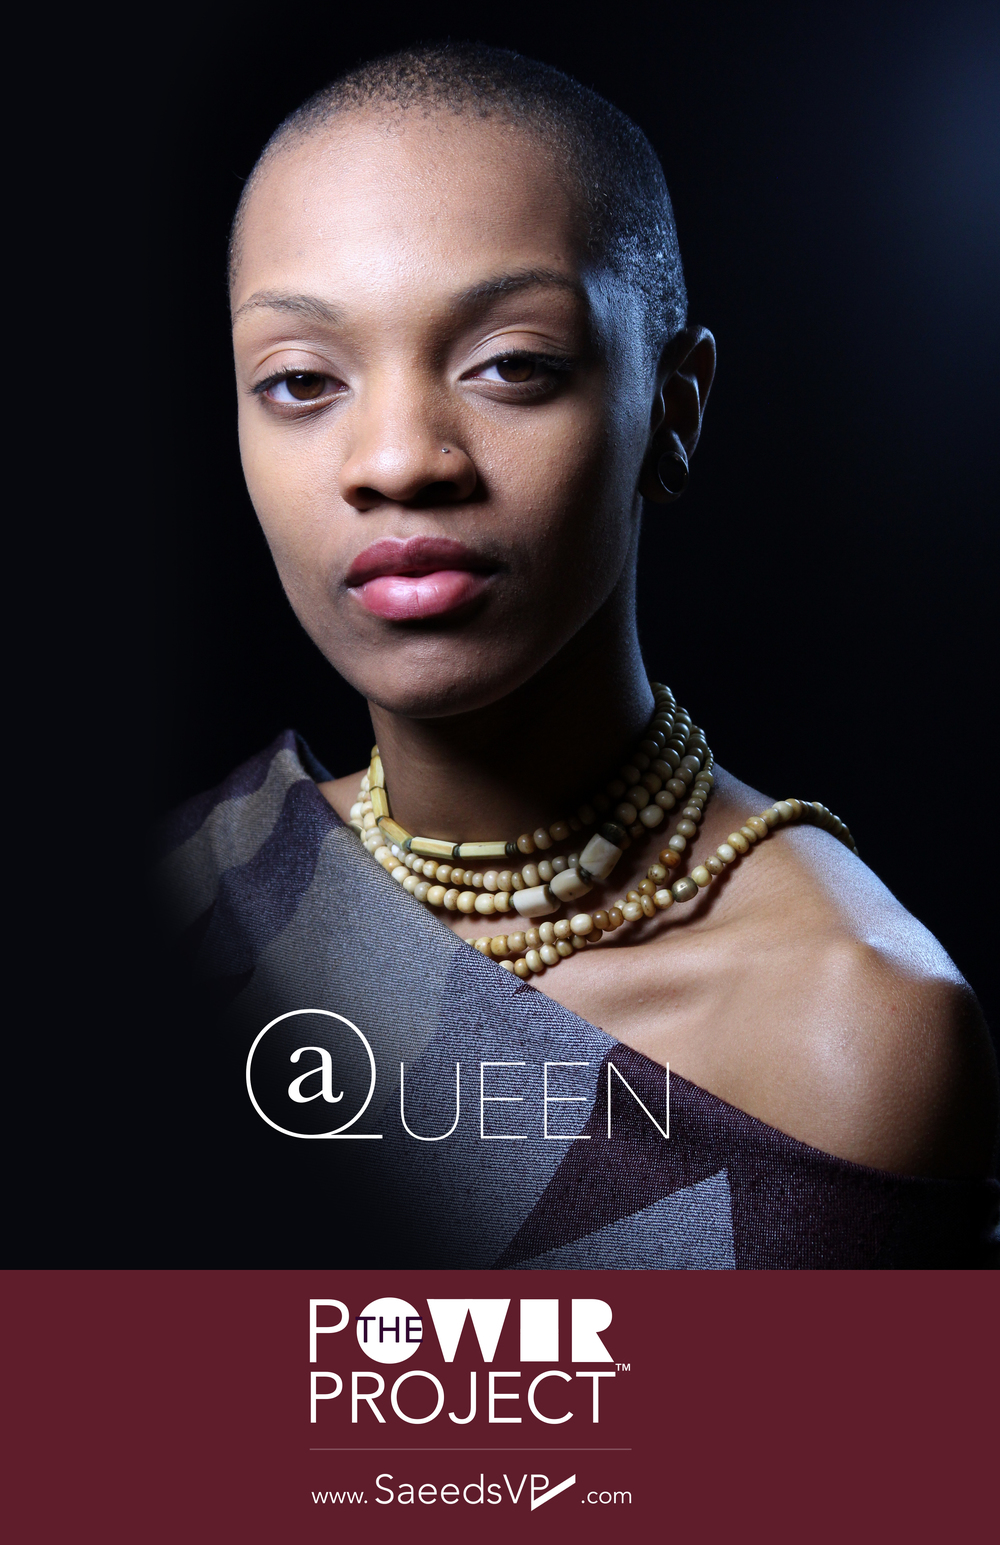 """What Queens do you know?Join the conversation as we discover Powerful Women and acknowledge the ones we know.The woman above """"Joie Kathos"""" has been acknowledged for her Queen like attributes.Queen's are supreme by lineage and have the authority to address pressing issues.Share this image with a woman you think is applying her authority to make the world a better place using the hashtag#icTheQueeninU"""